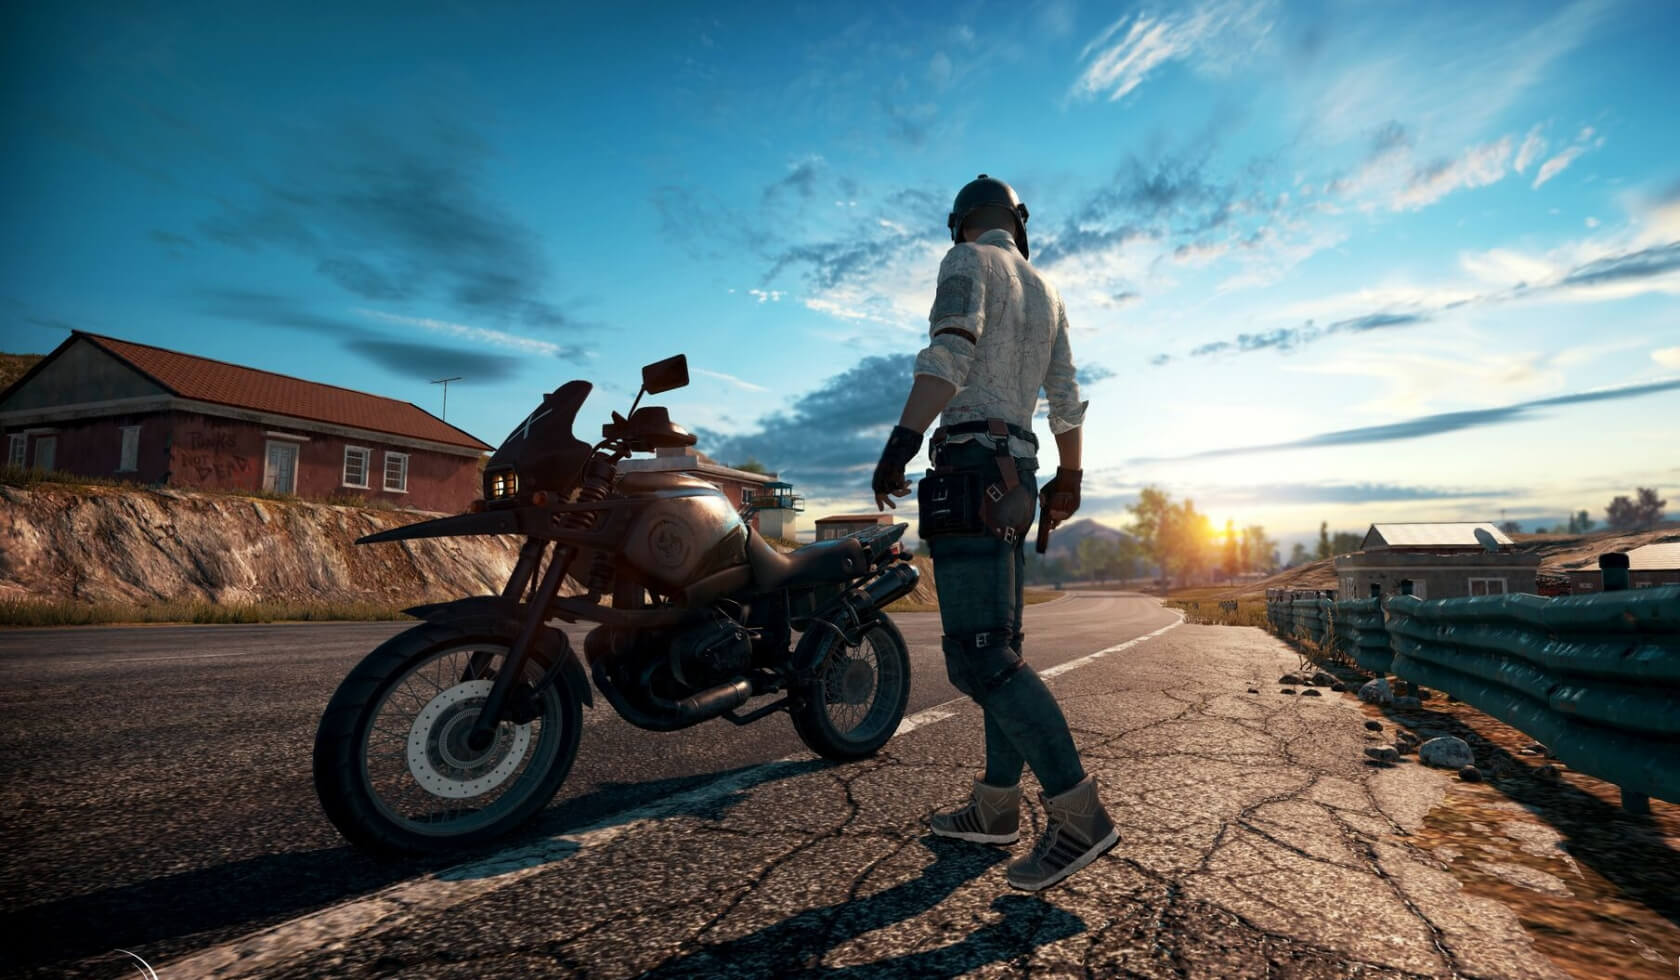 Get PlayerUnknown's Battlegrounds free with Xbox One X purchase